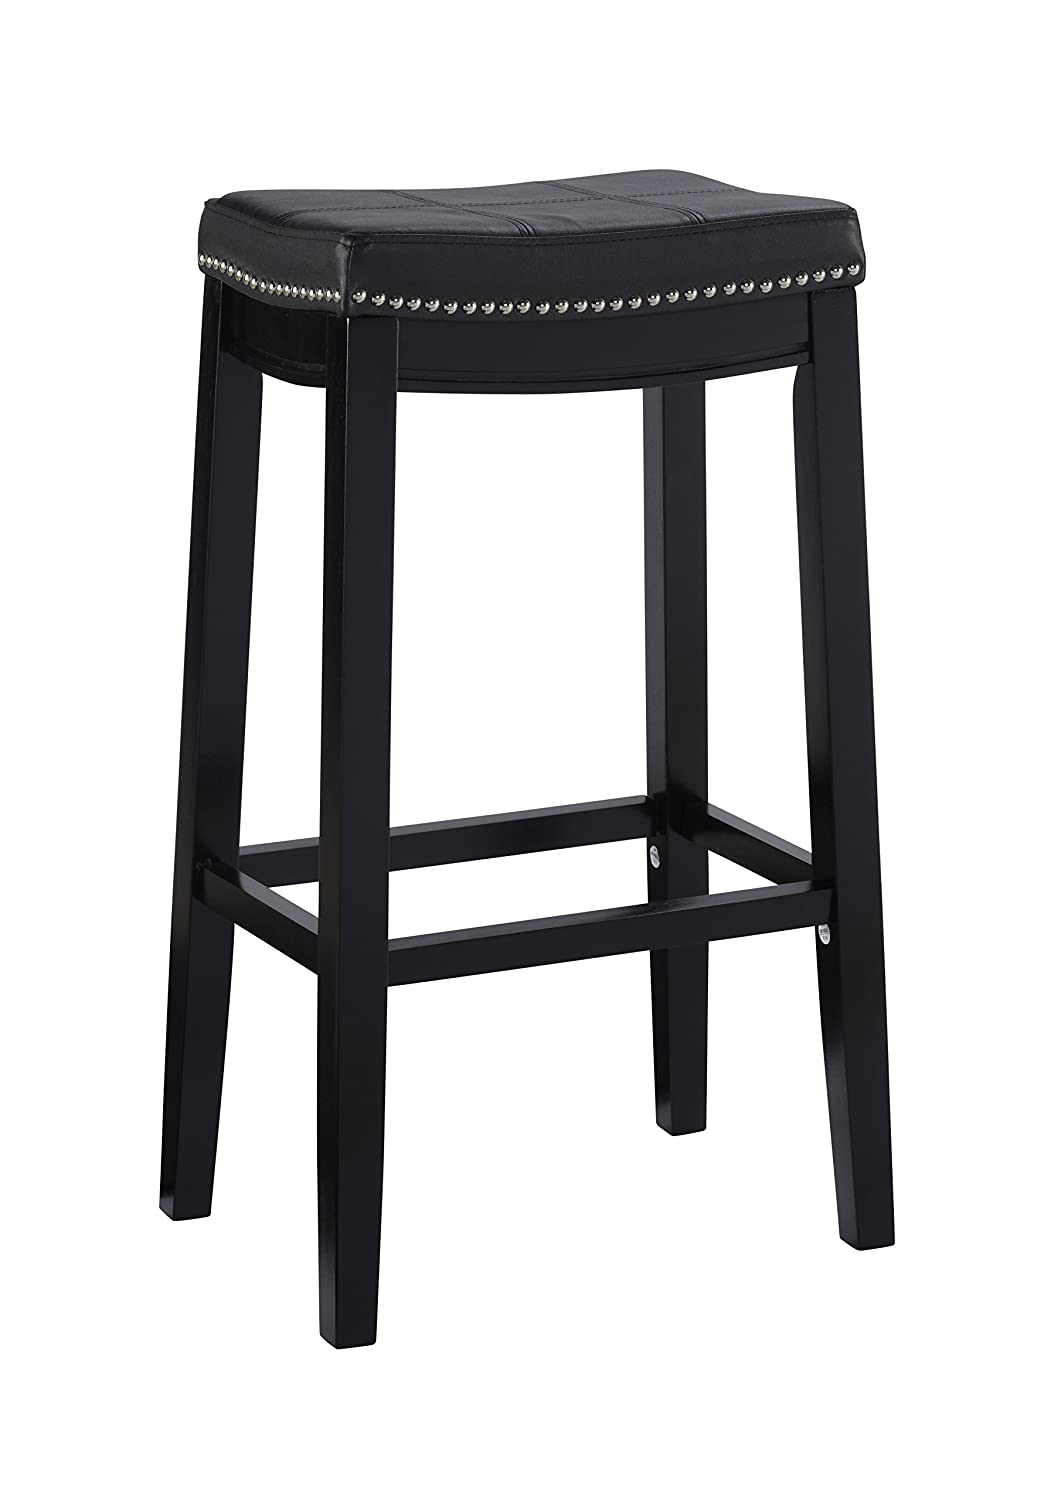 Linon 55816BLK01U Claridge Bar, Black Stool 32 X 18.75 X 13